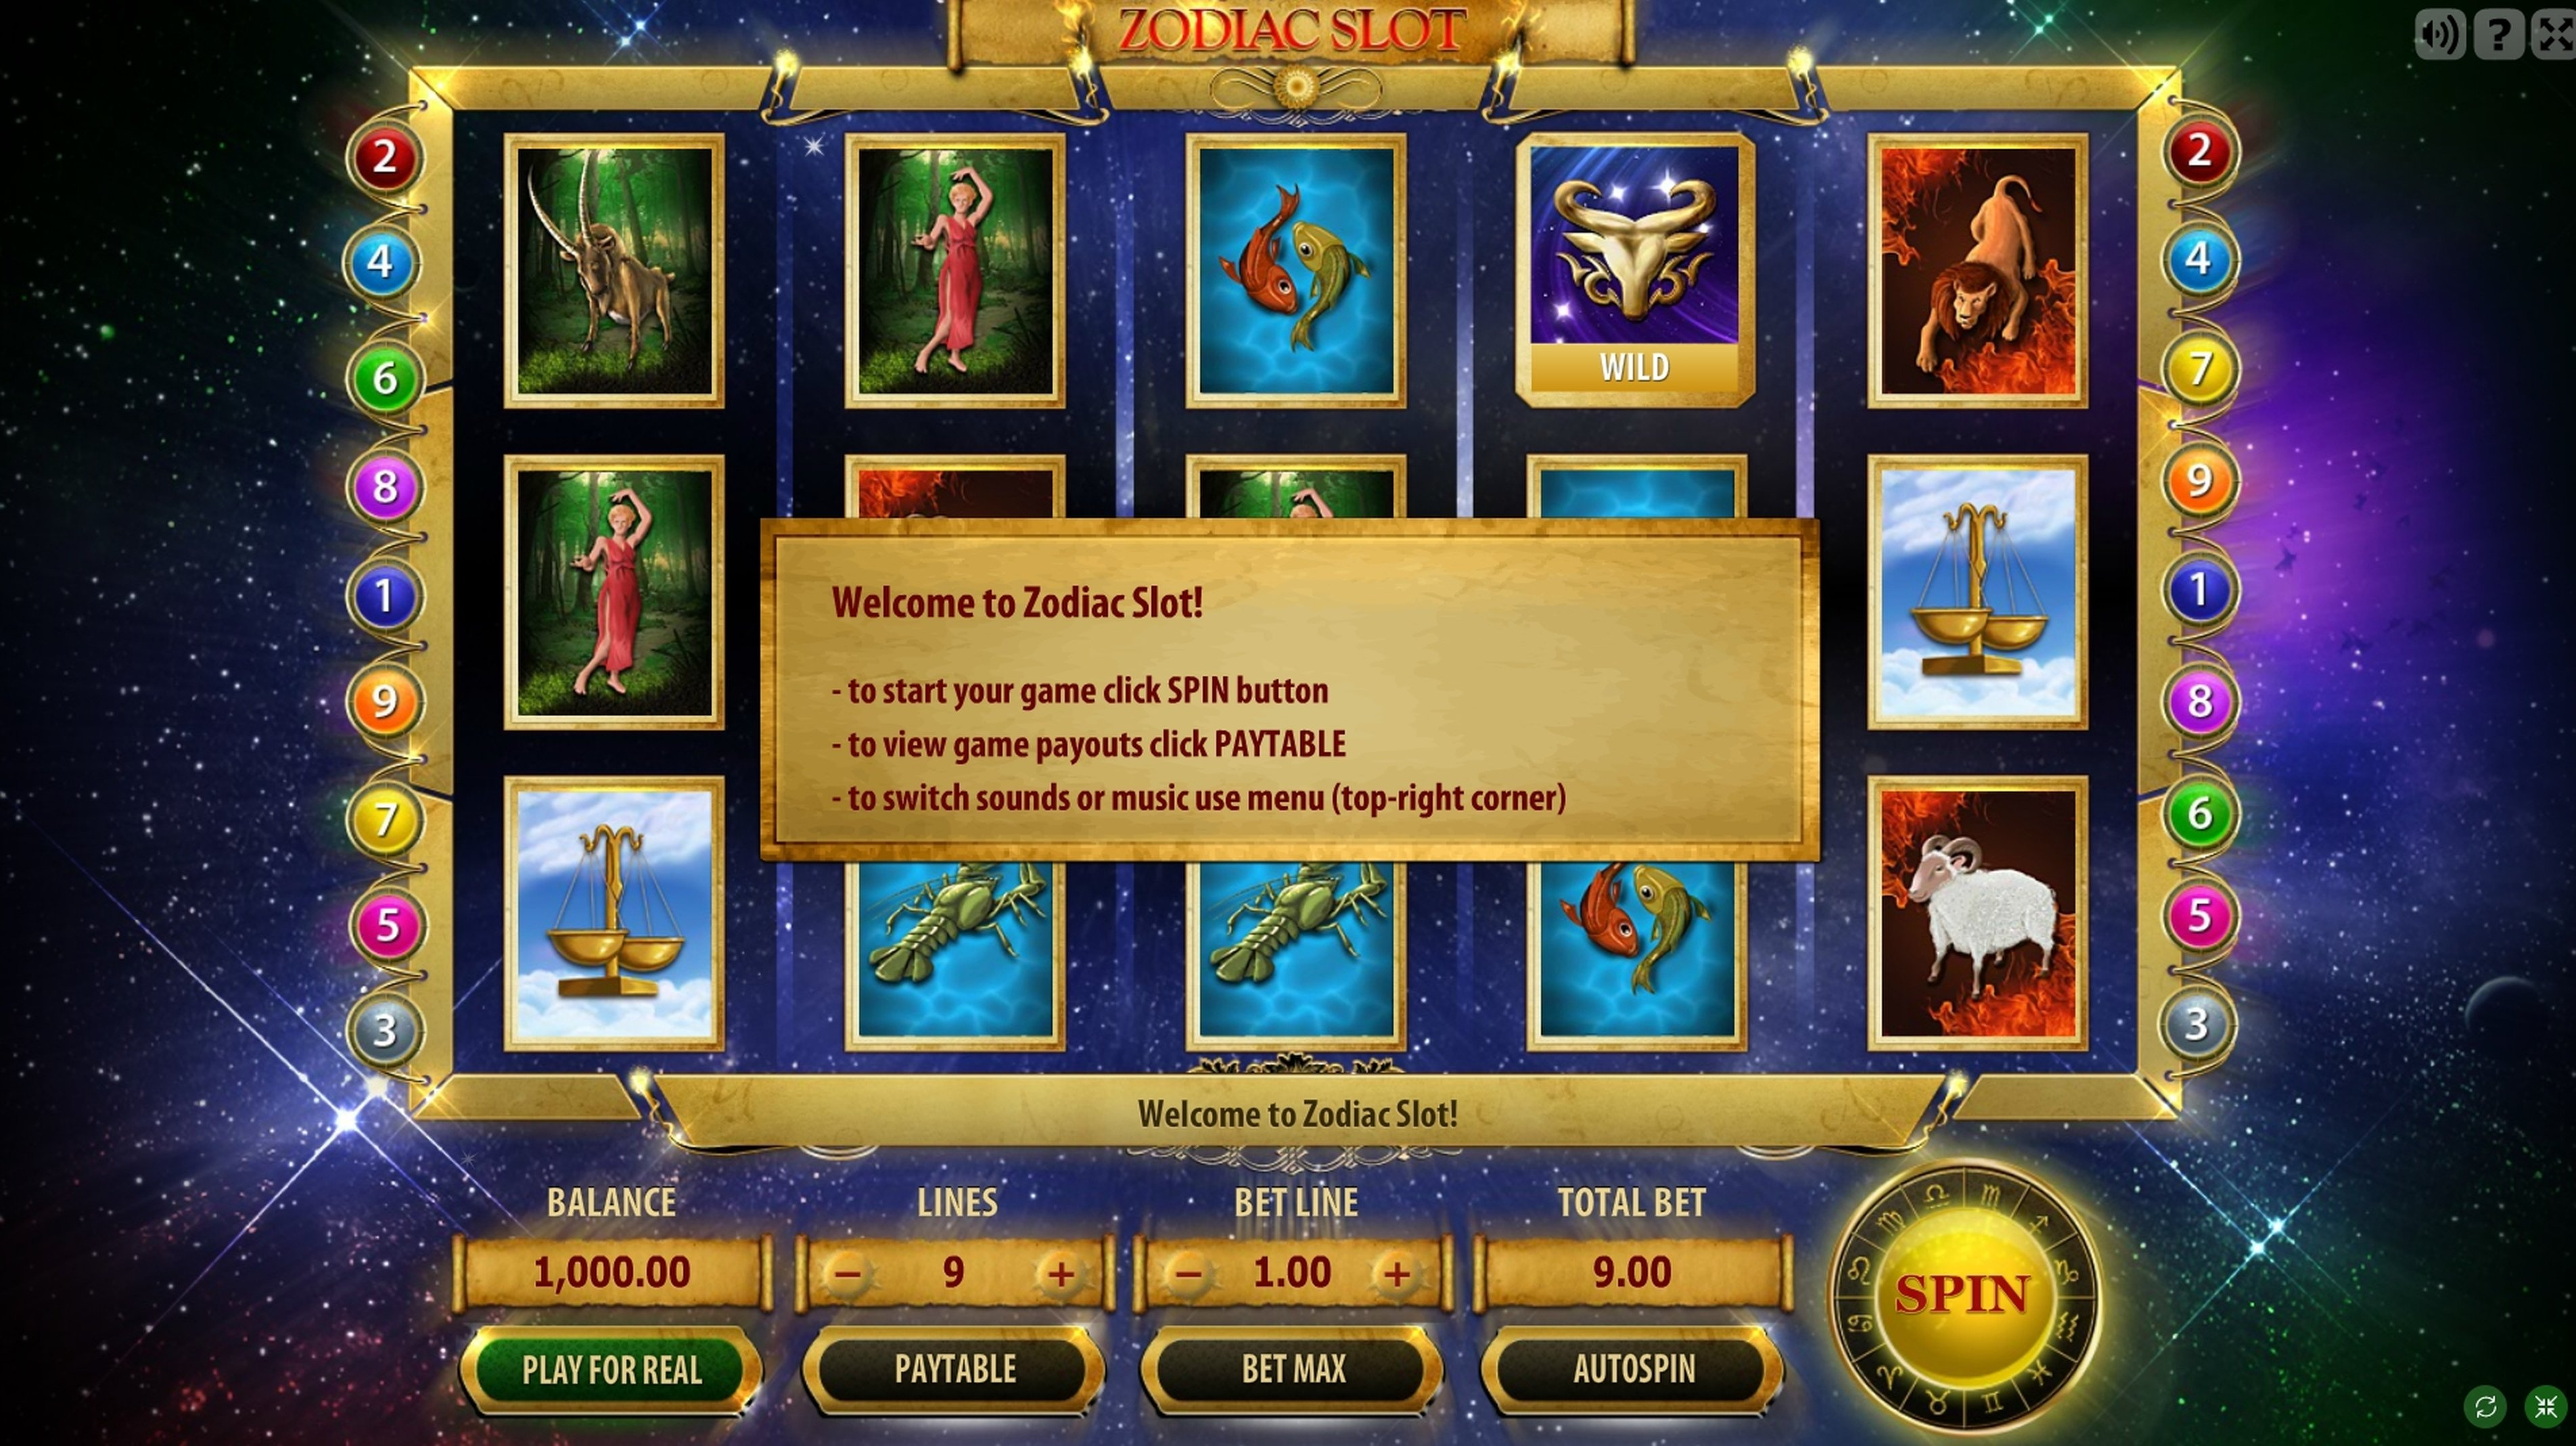 Reels in Zodiac Slot Slot Game by GameScale